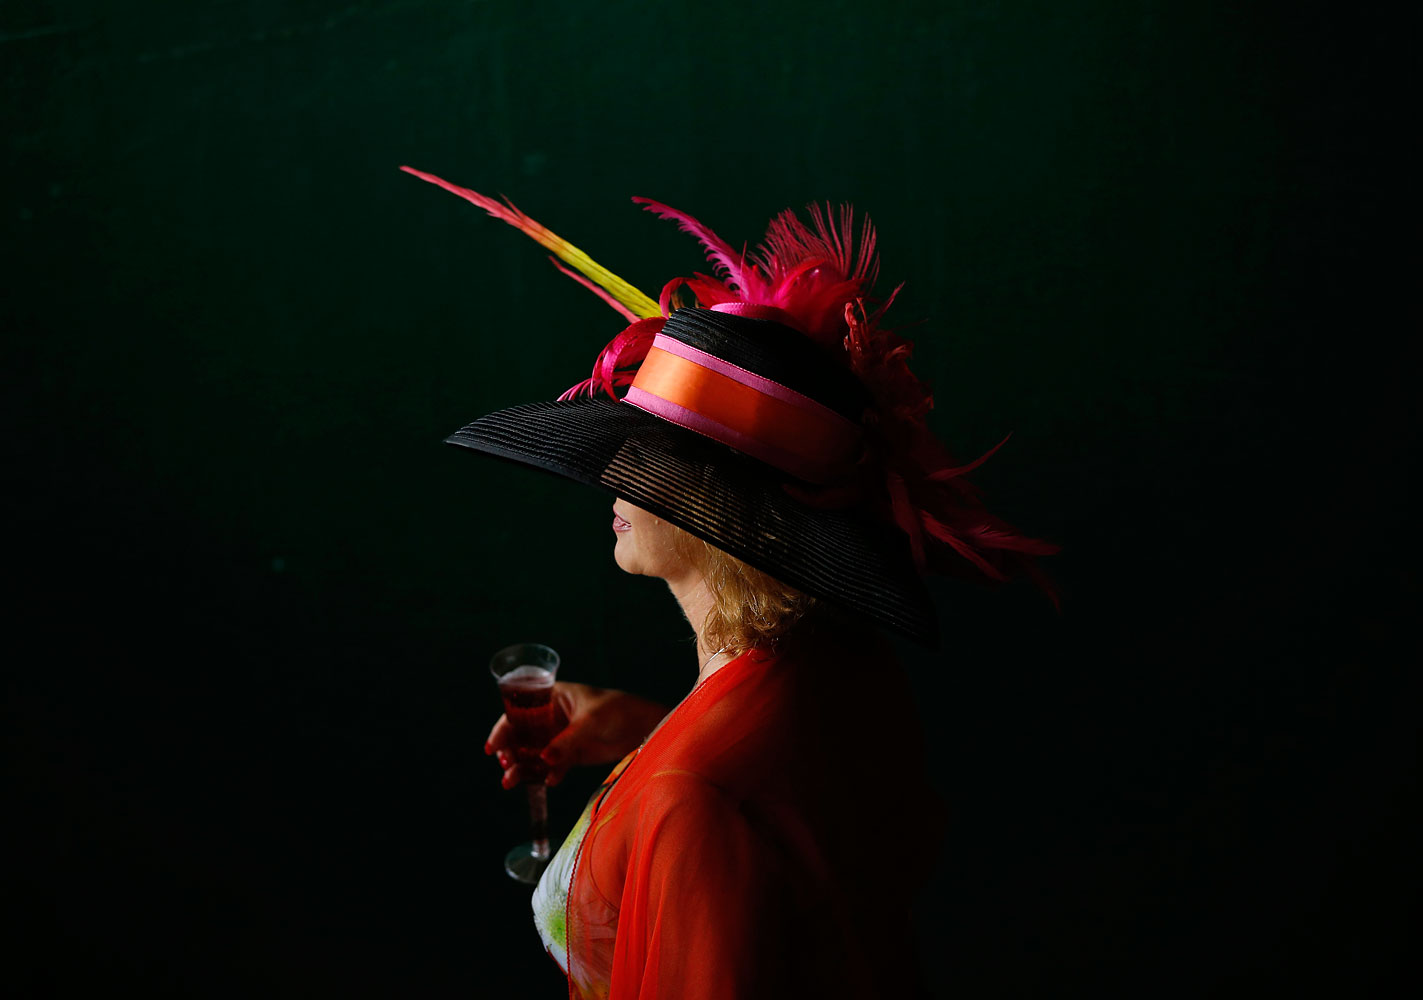 A woman makes her way to the track in a stunning black and red Derby hat.